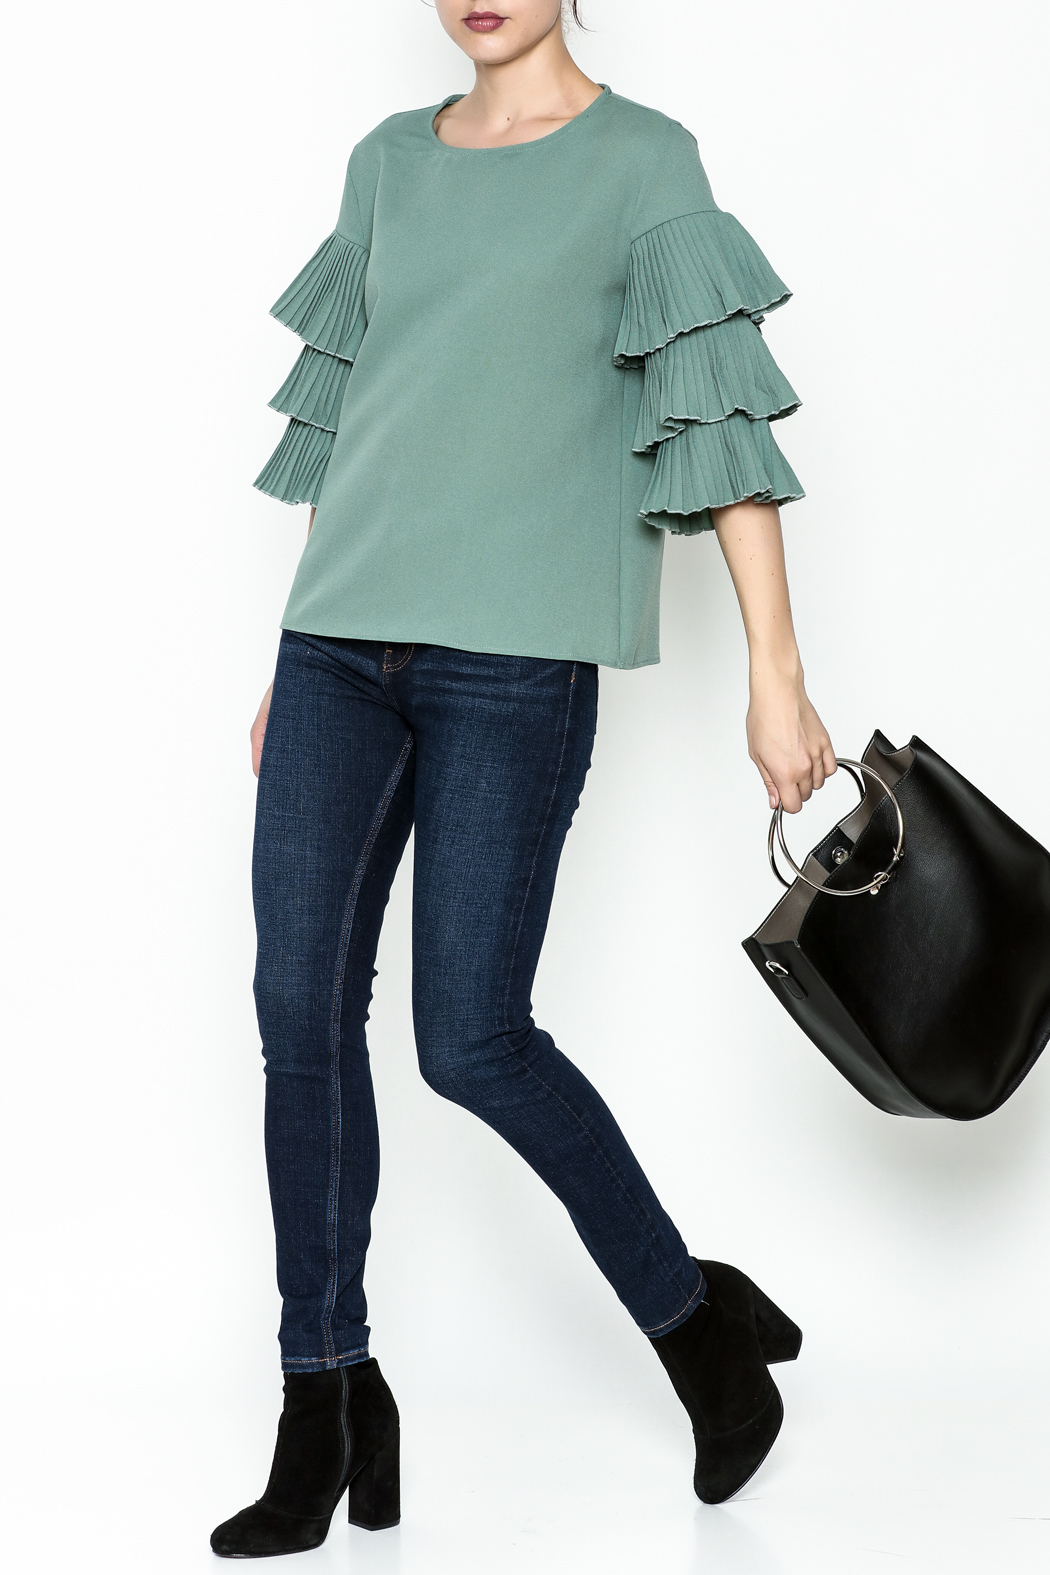 on12th Ruffle Sleeve Blouse - Side Cropped Image